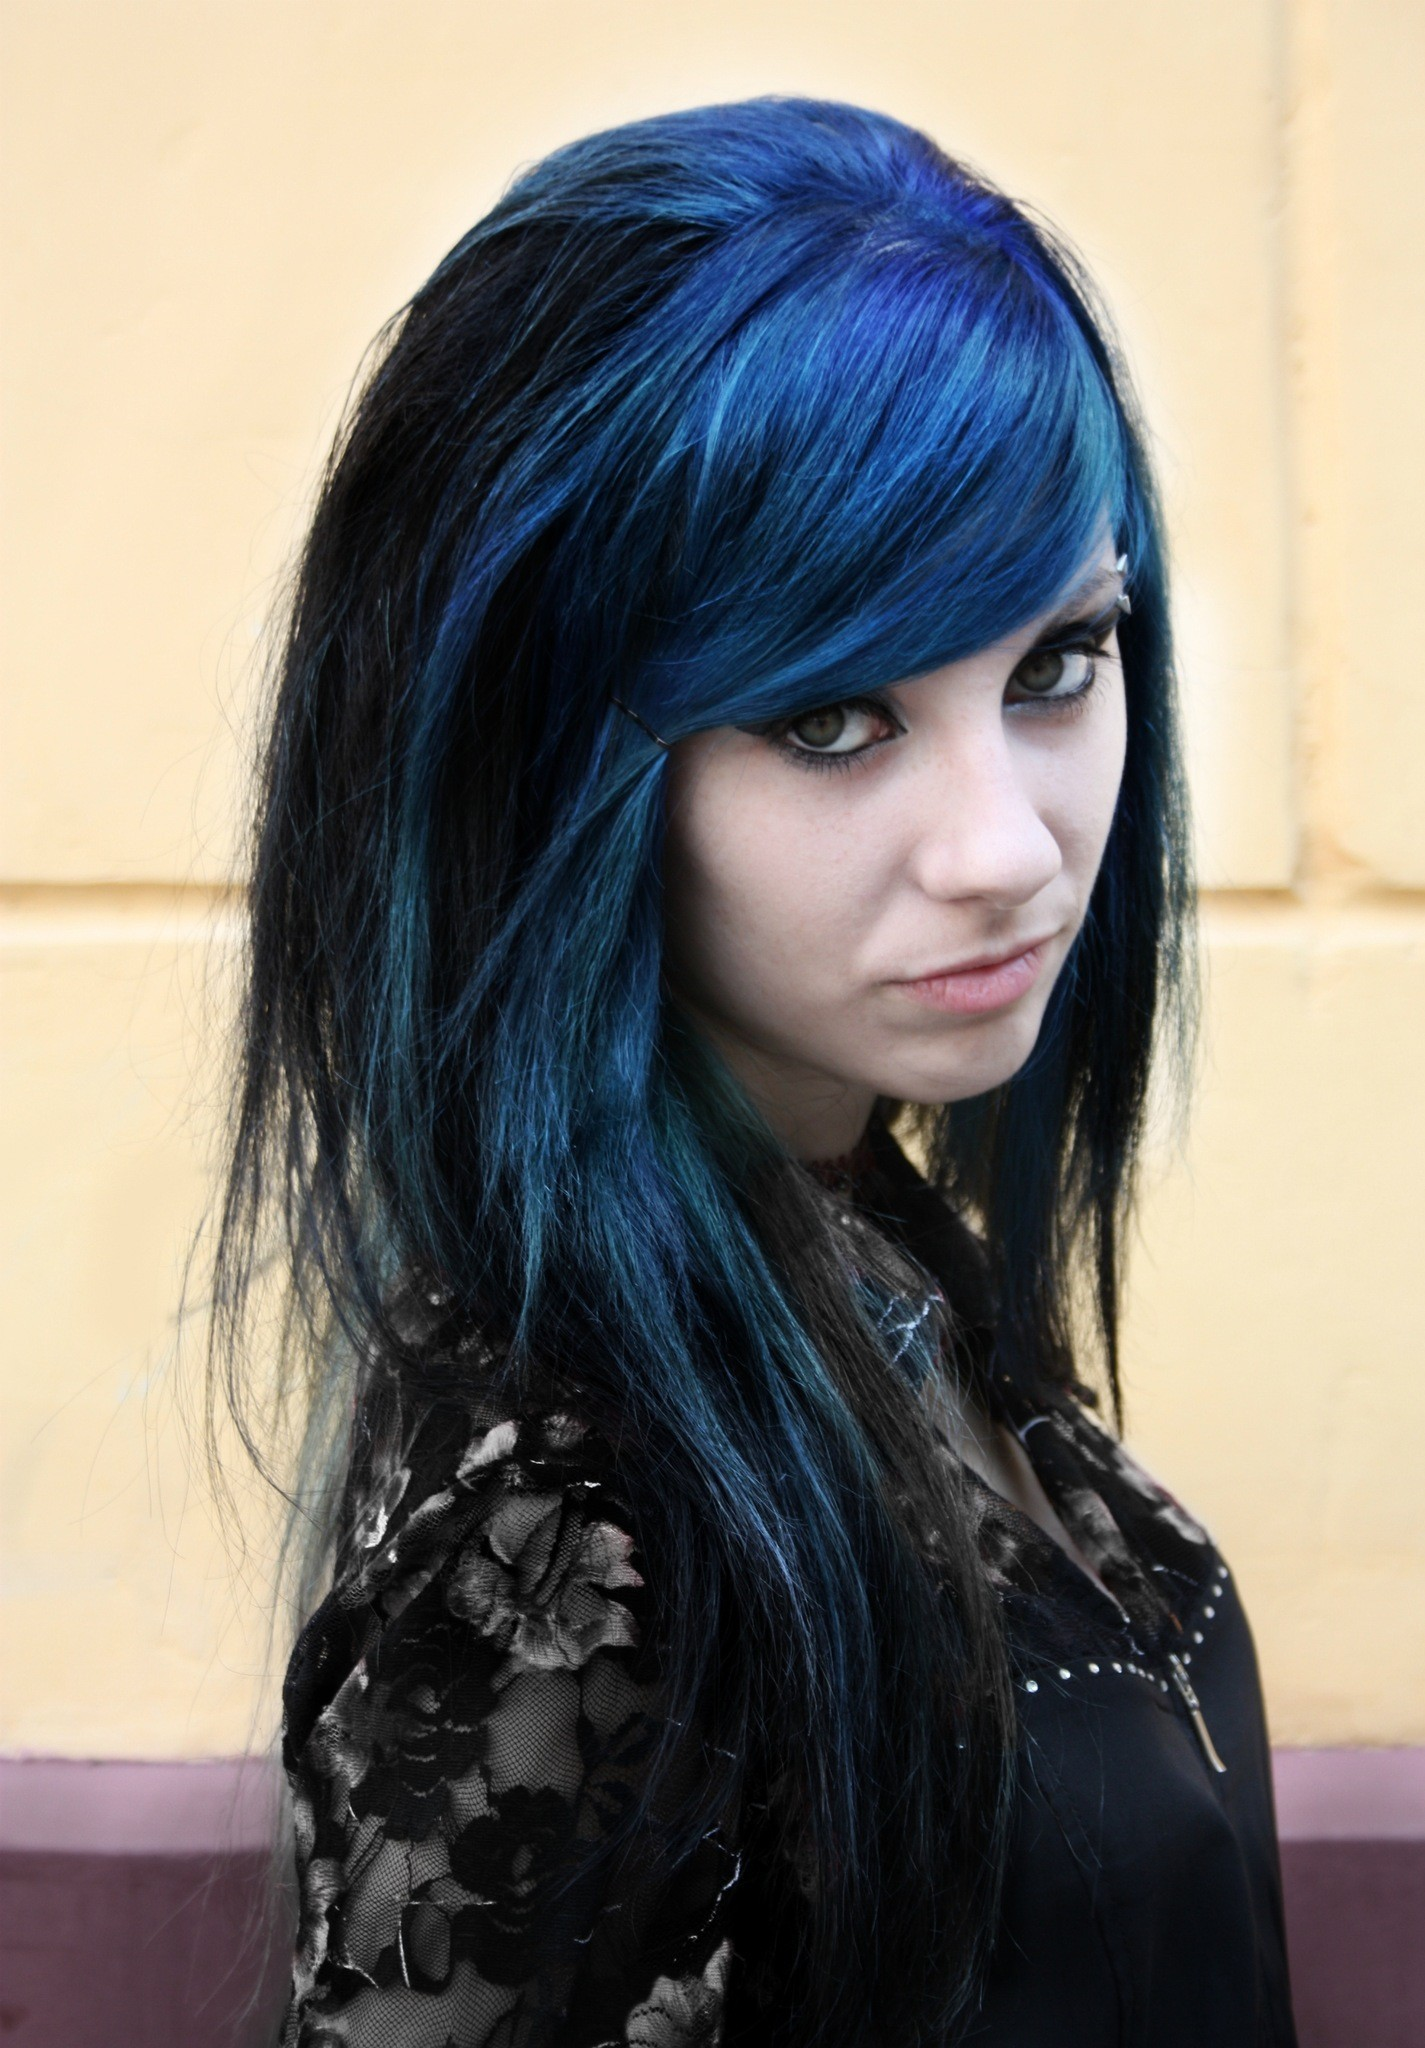 woman Russia blue hair HD Wallpaper